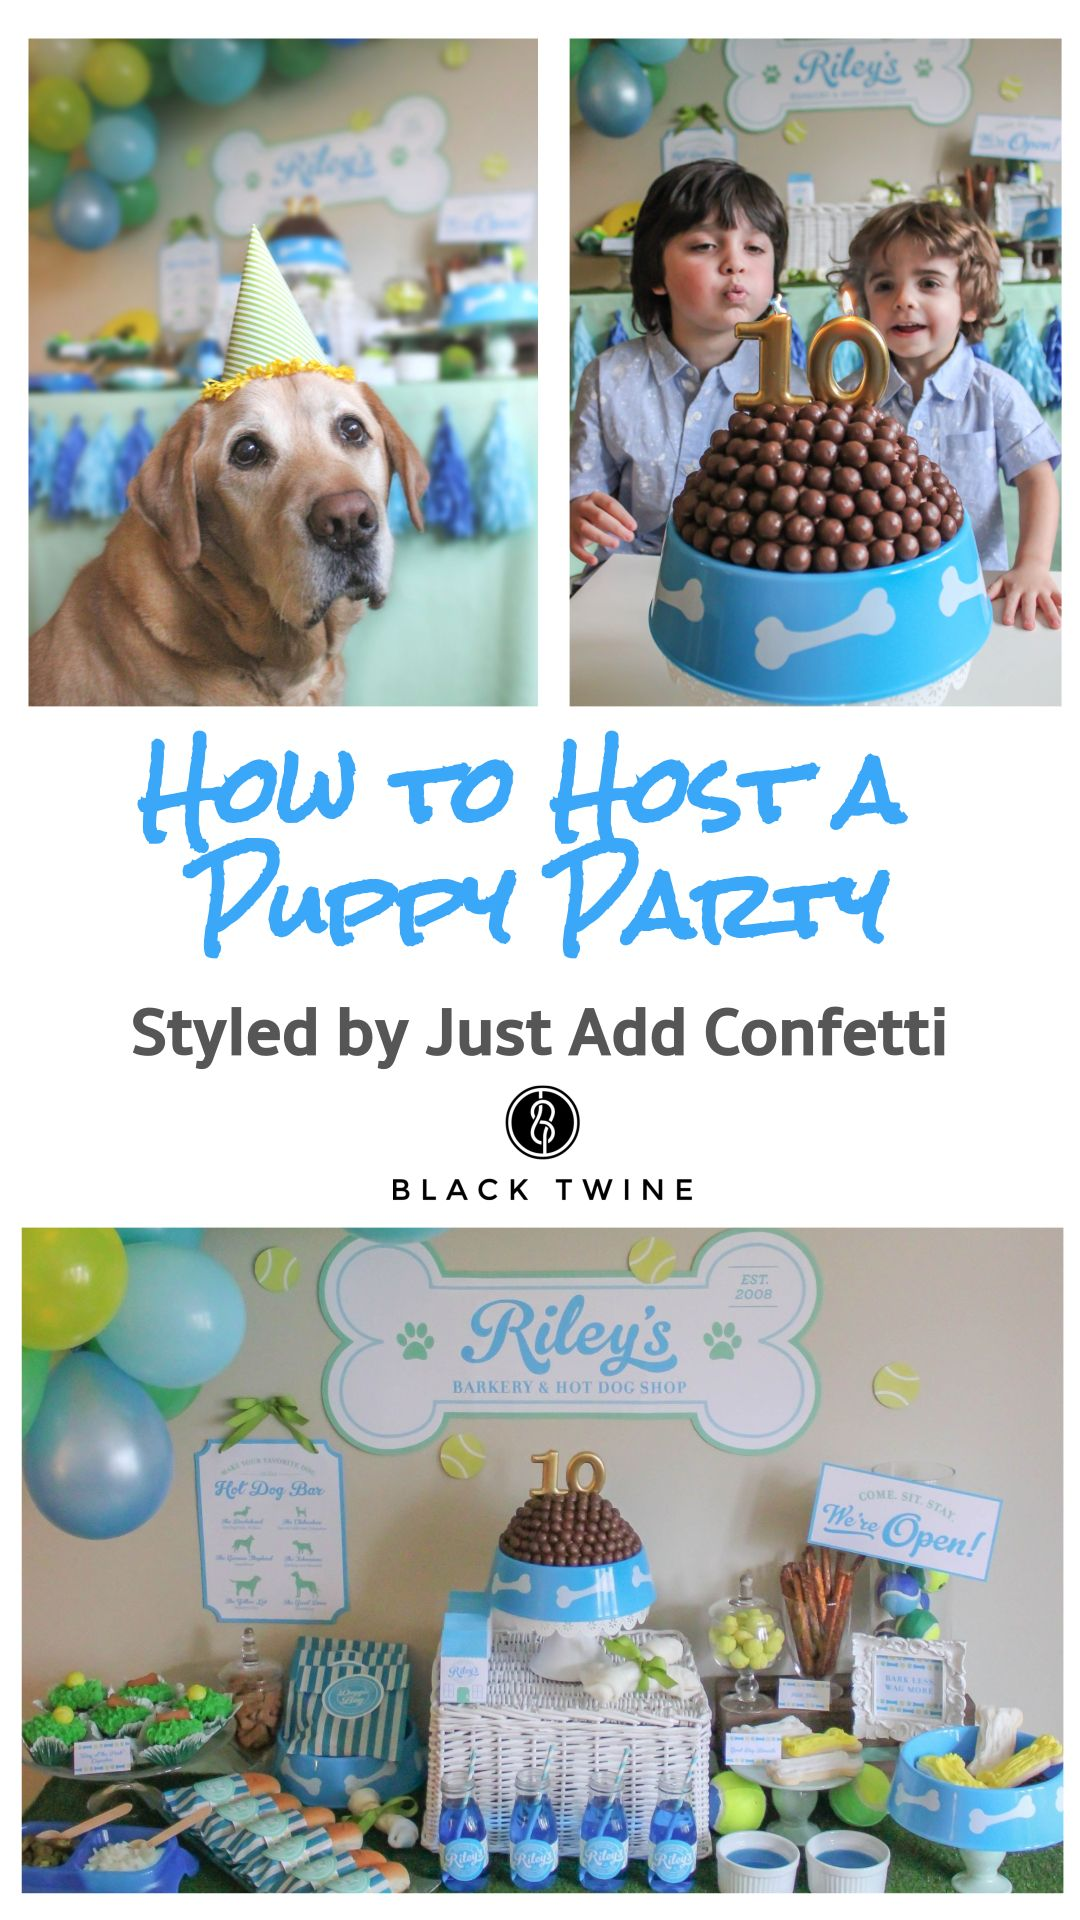 How To Host A Puppy Birthday Party Styled By Just Add Confetti Black Twine Birthdayparty Part Dog Birthday Party Puppy Themed Birthday Party Puppy Birthday